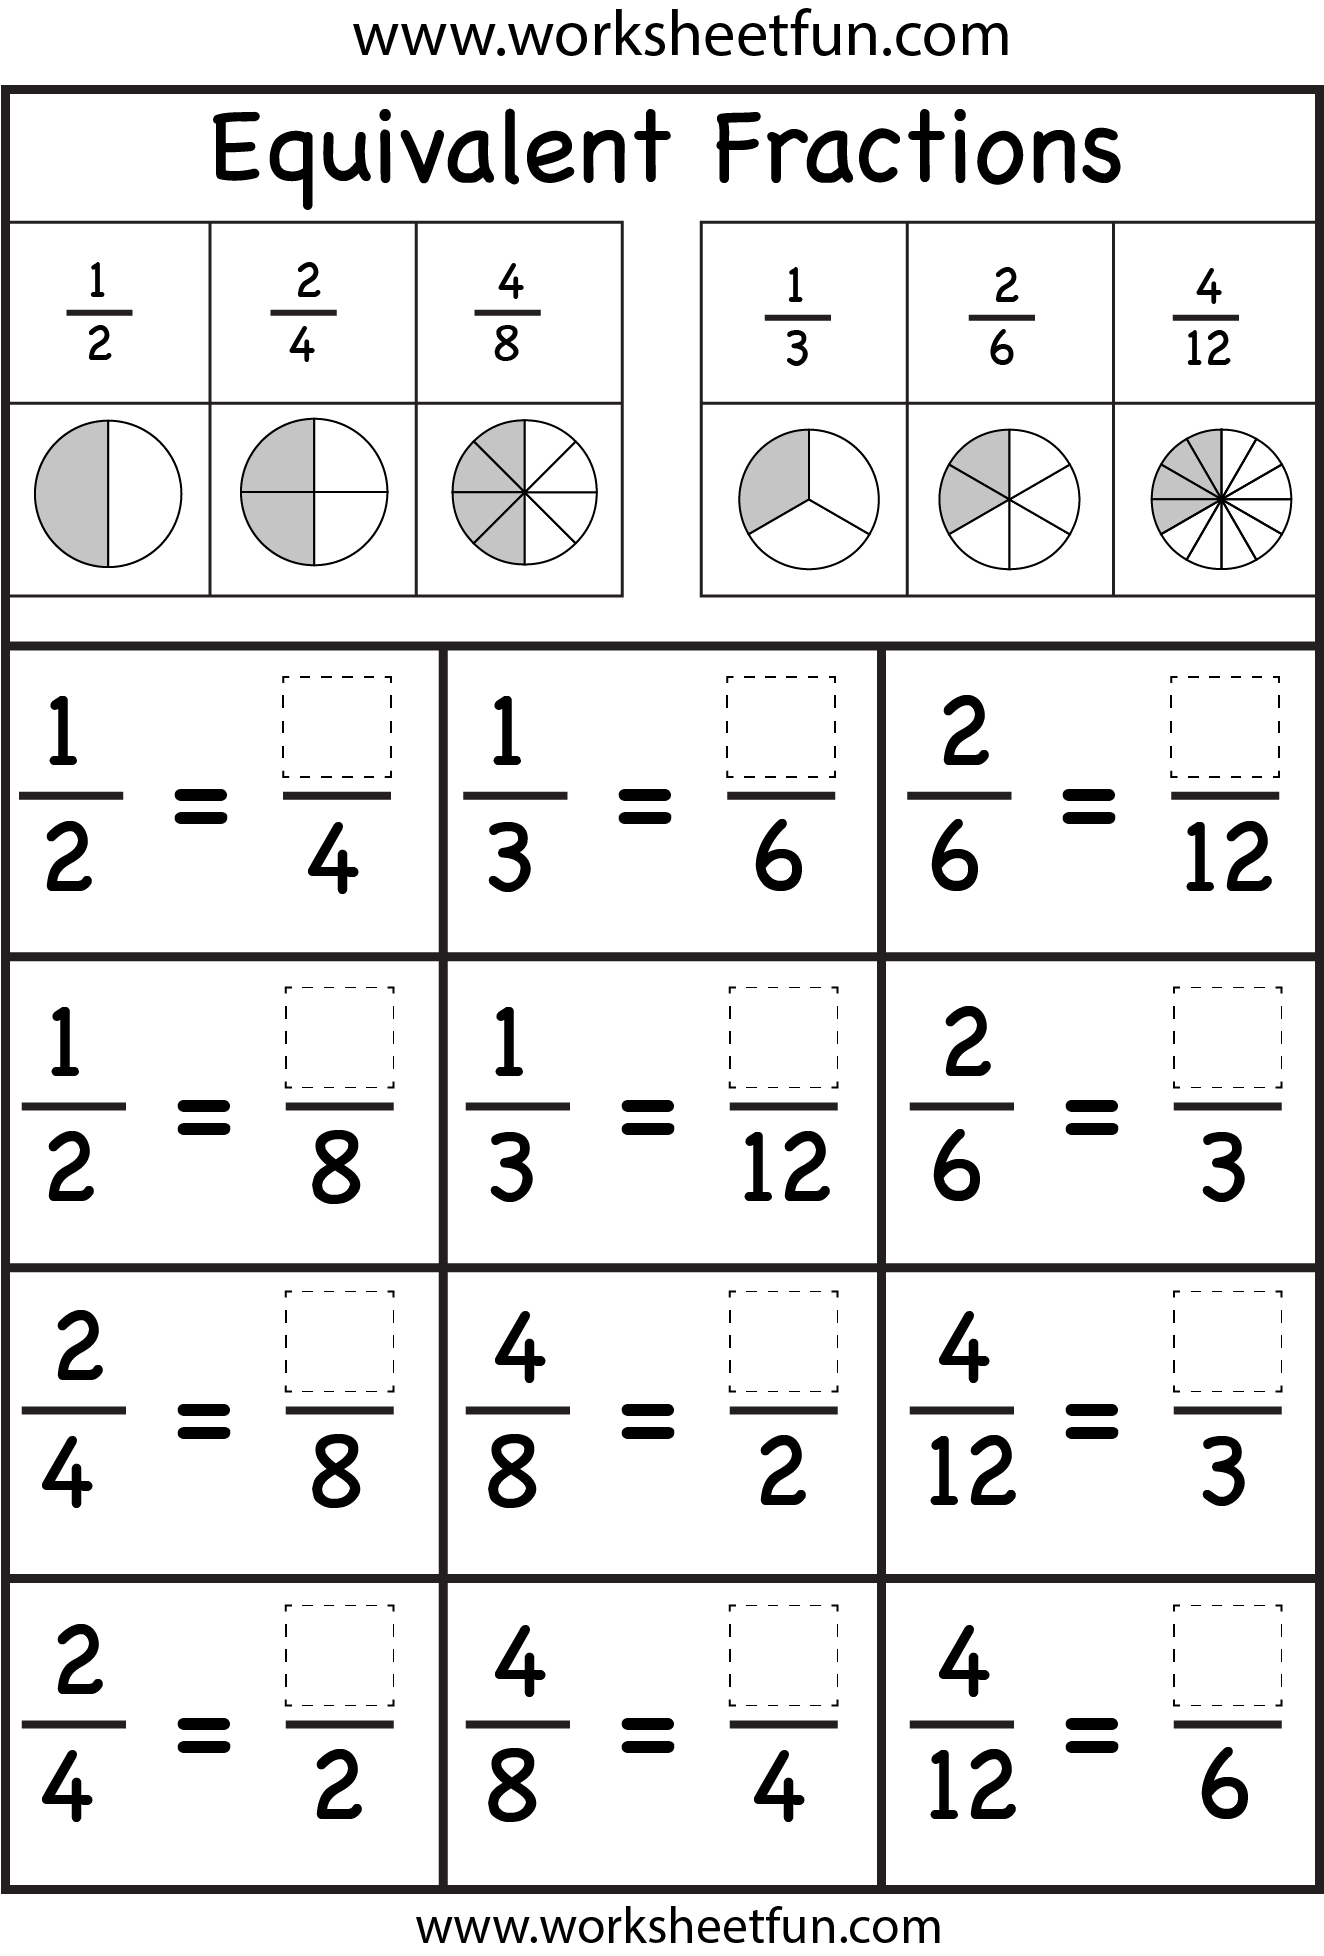 worksheet Fraction Worksheets equivalent fractions ashley walters elizabeth worksheet lots of worksheets